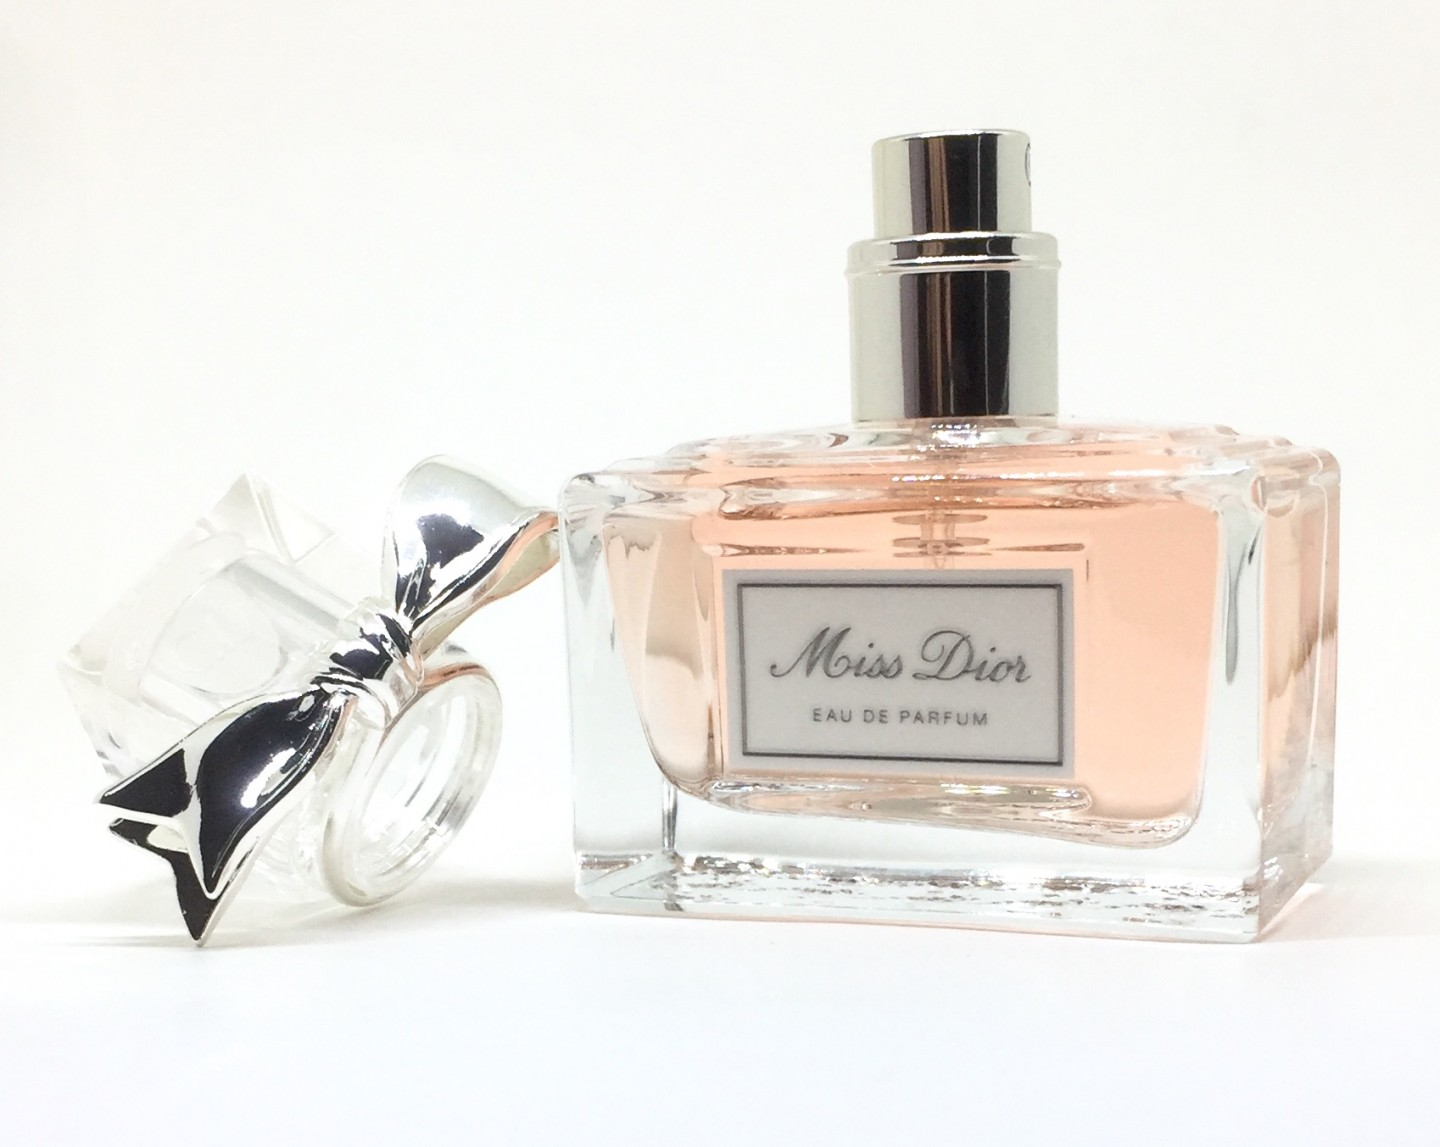 Miss Dior The New eau de parfum